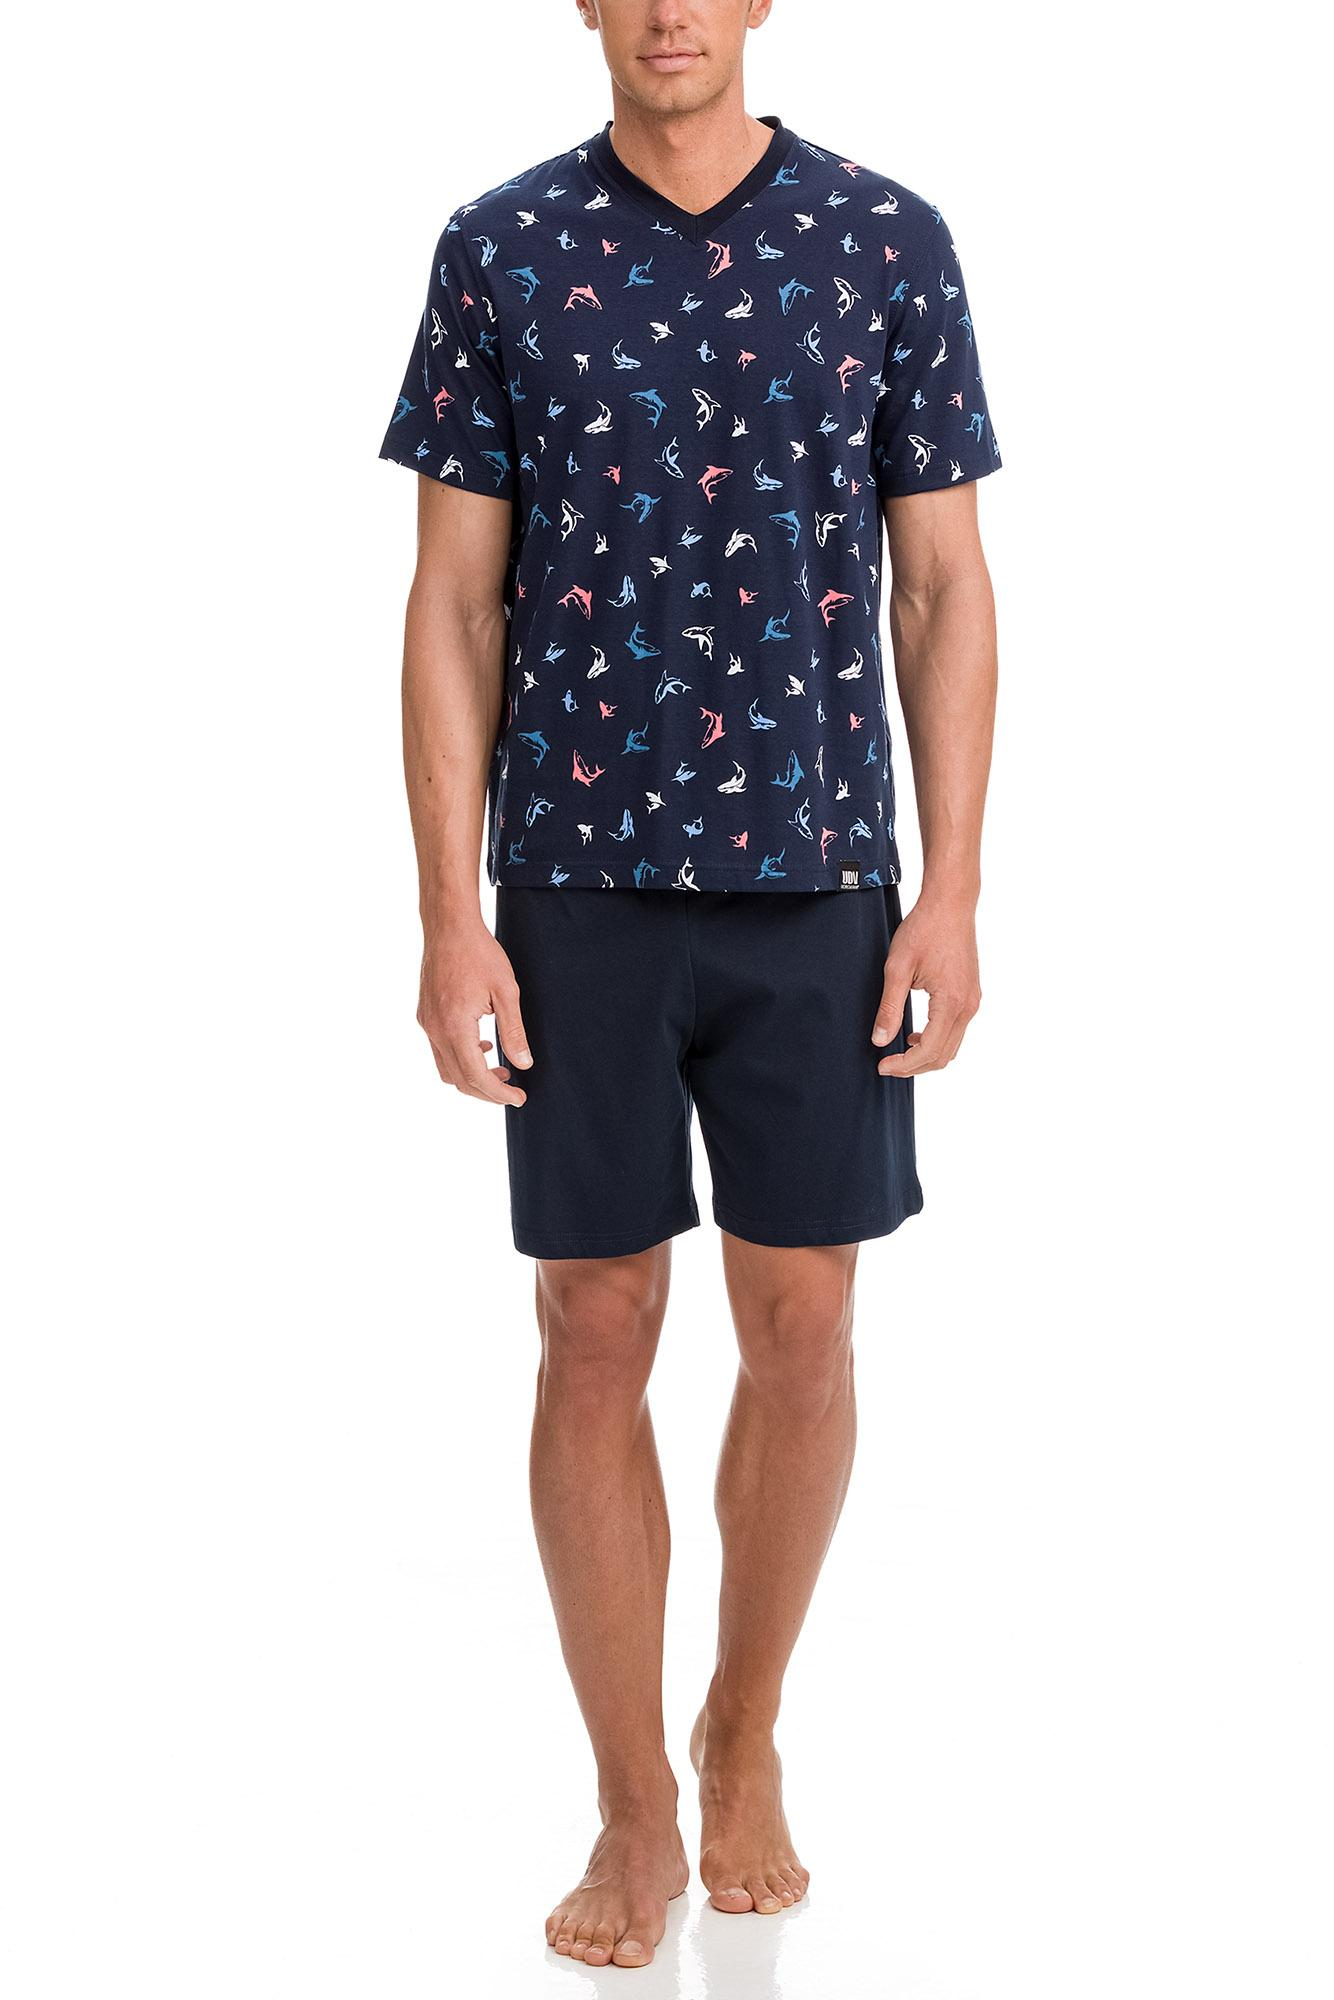 "Men's Print Pyjamas ""Sharks"""